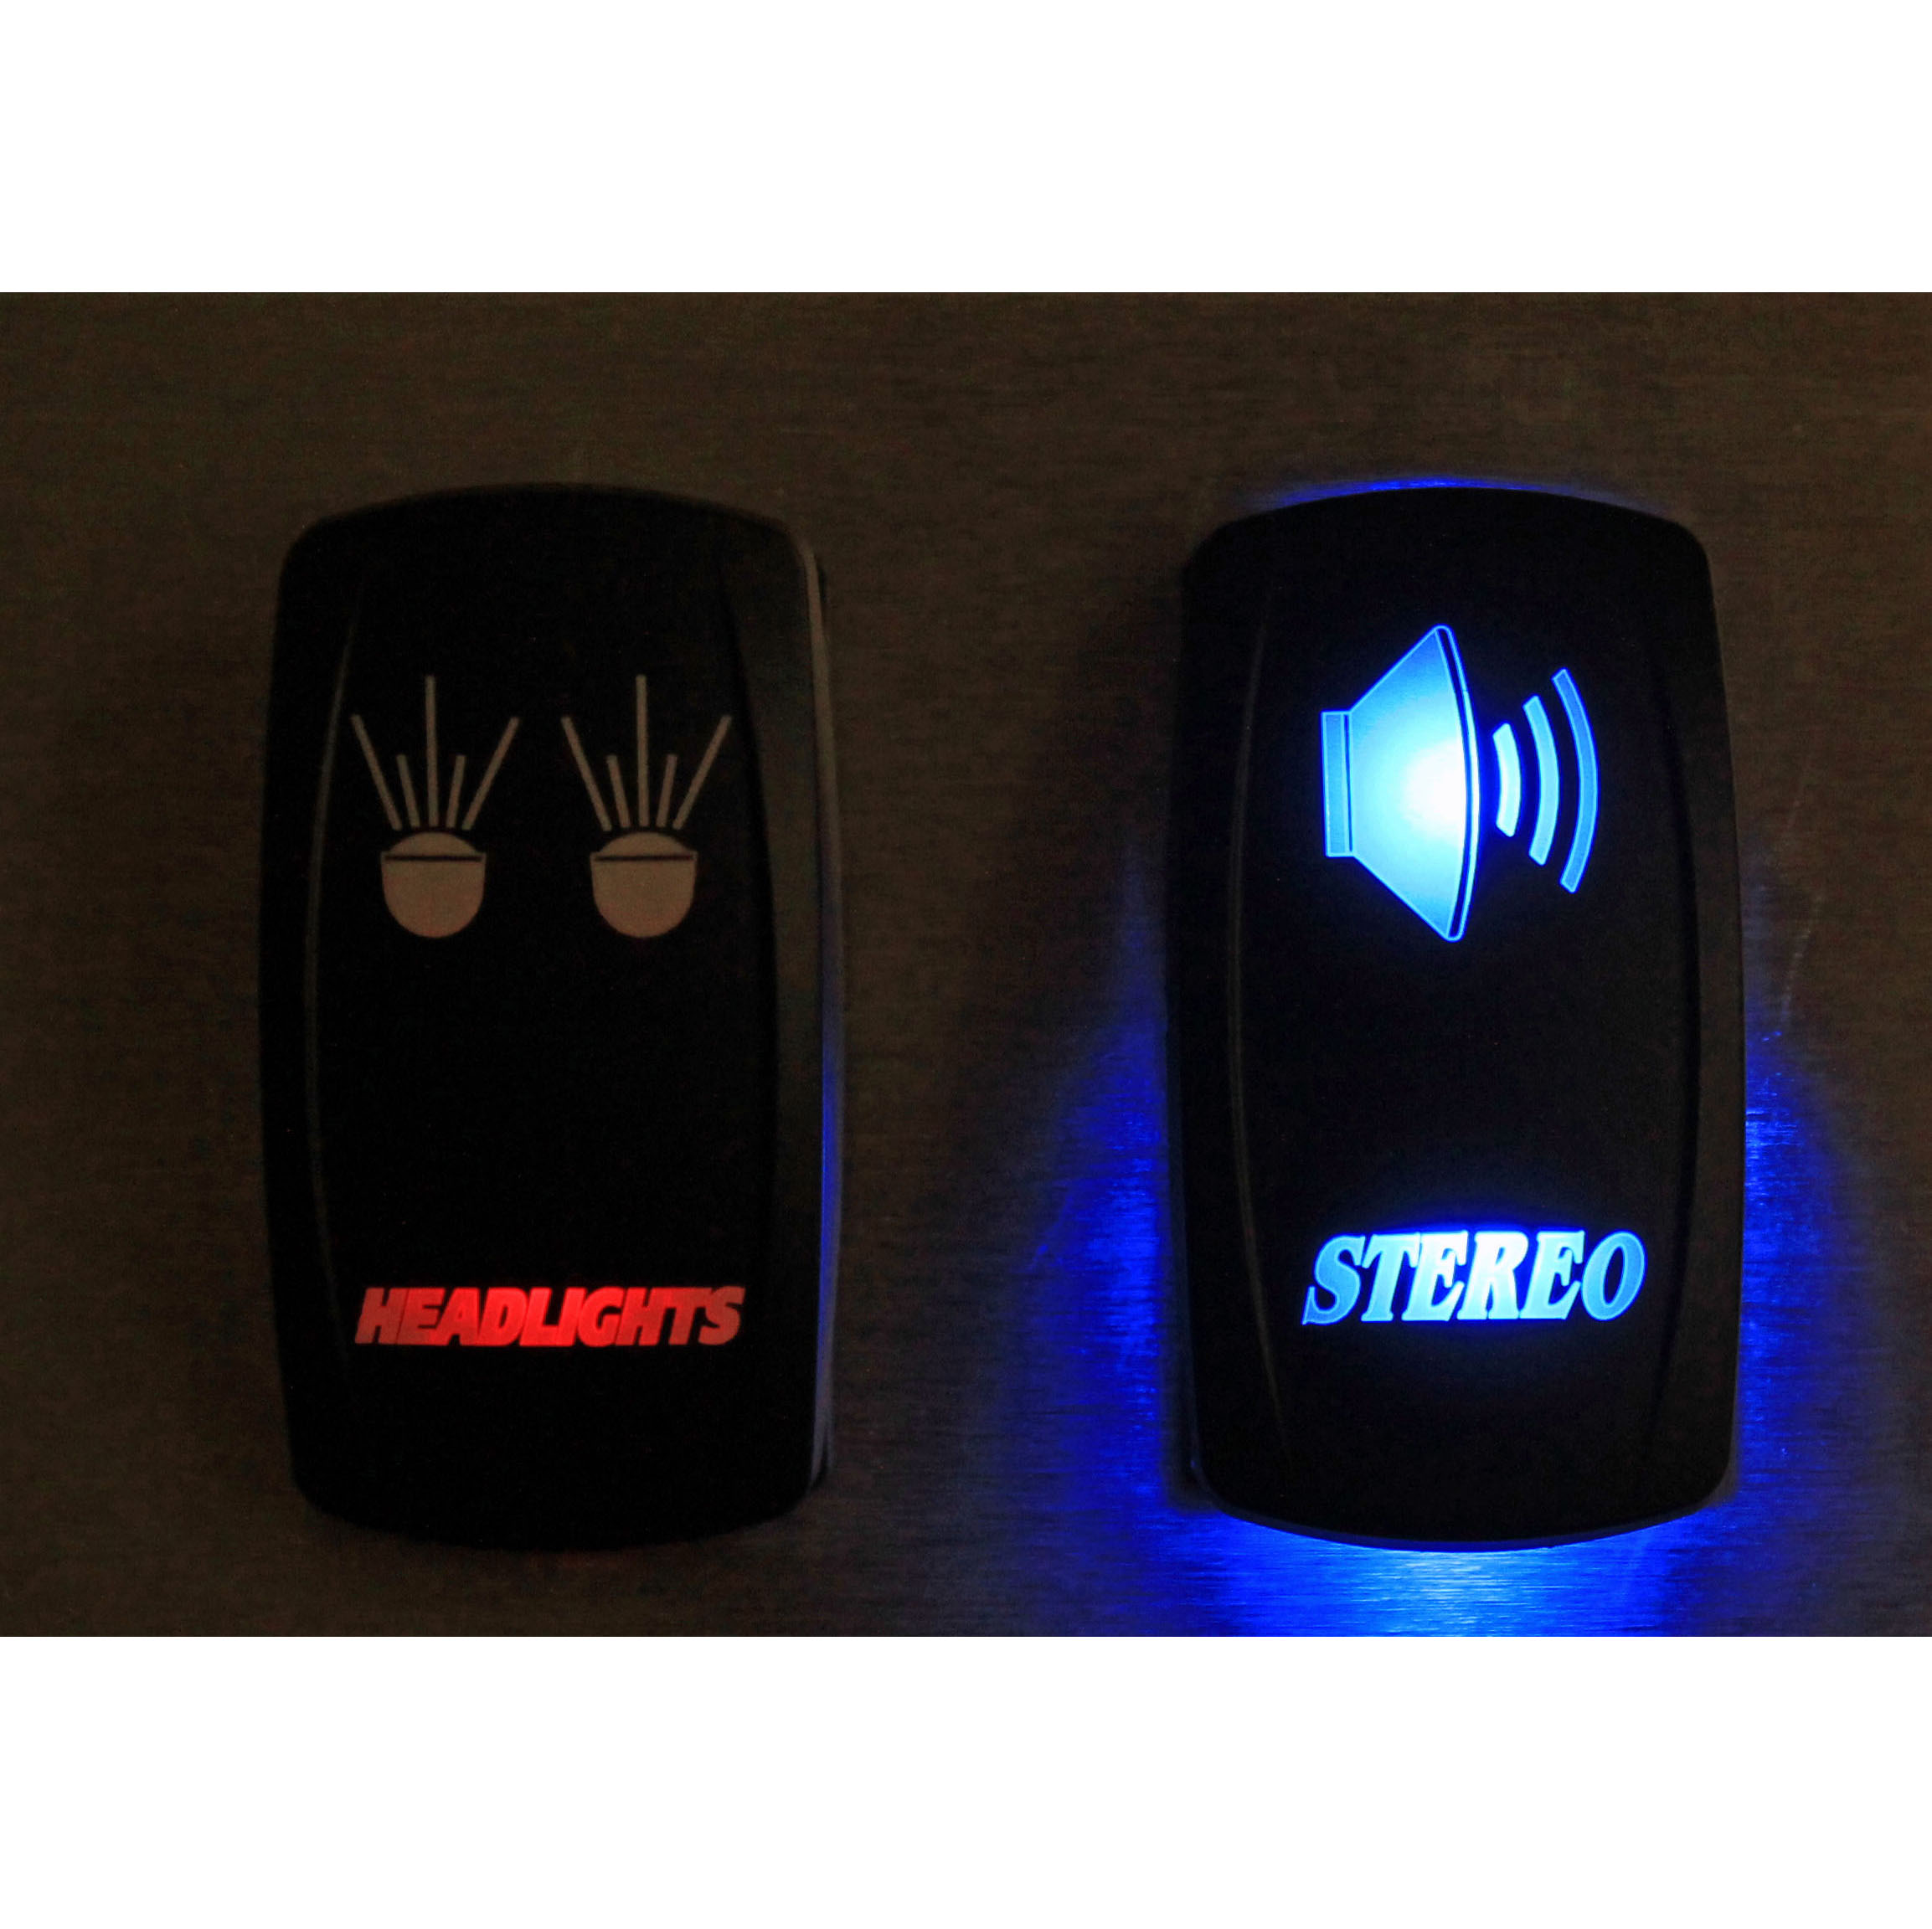 Switches Laser Engraved Modquad Carling Wiring Diagram Led Windshield Light Switch